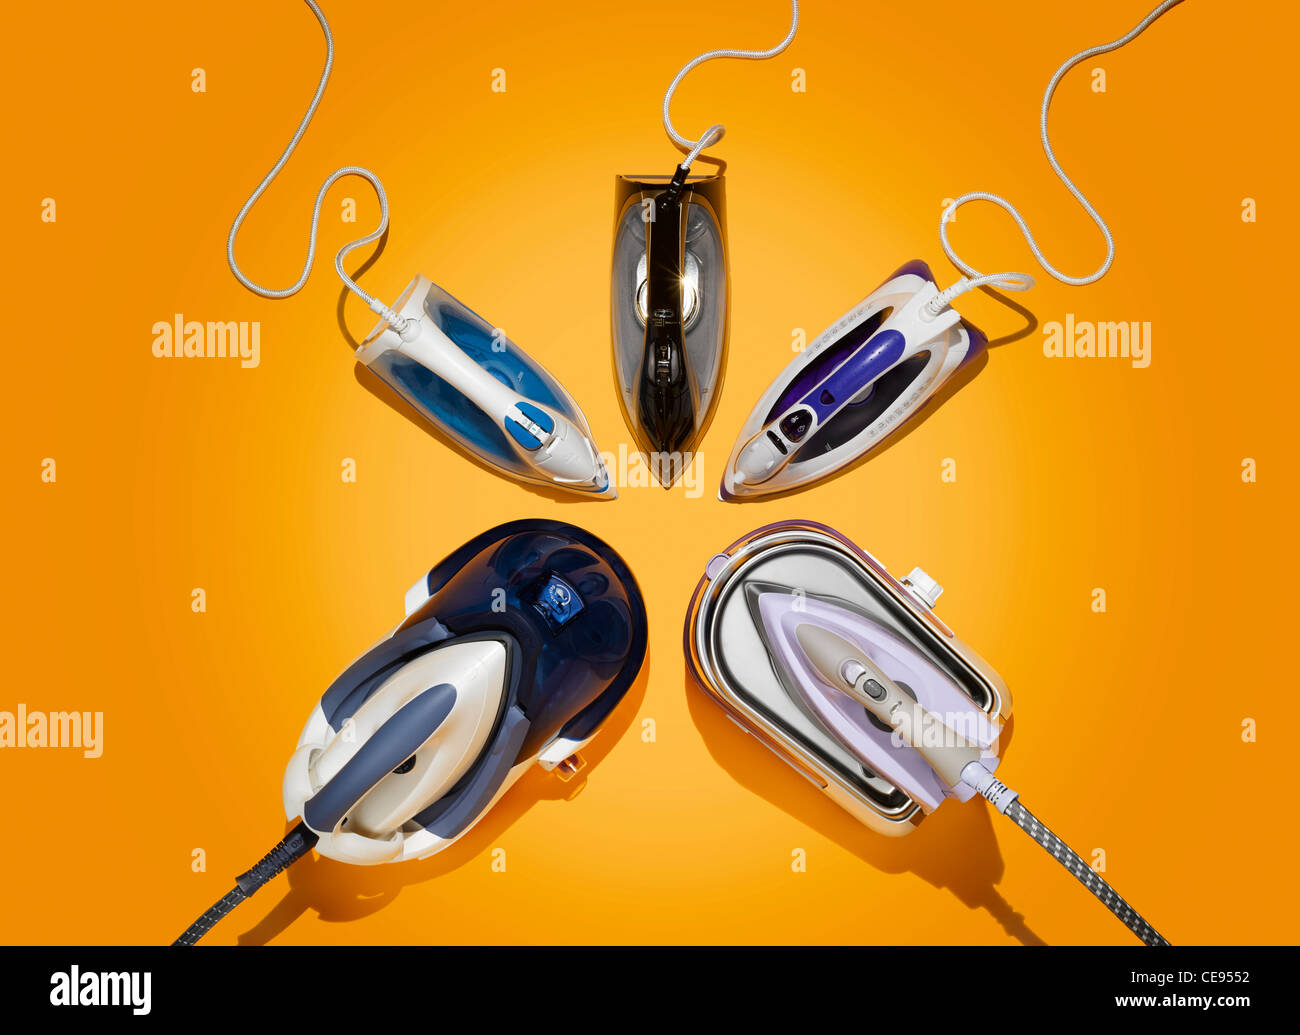 Five irons on a yellow background Stock Photo